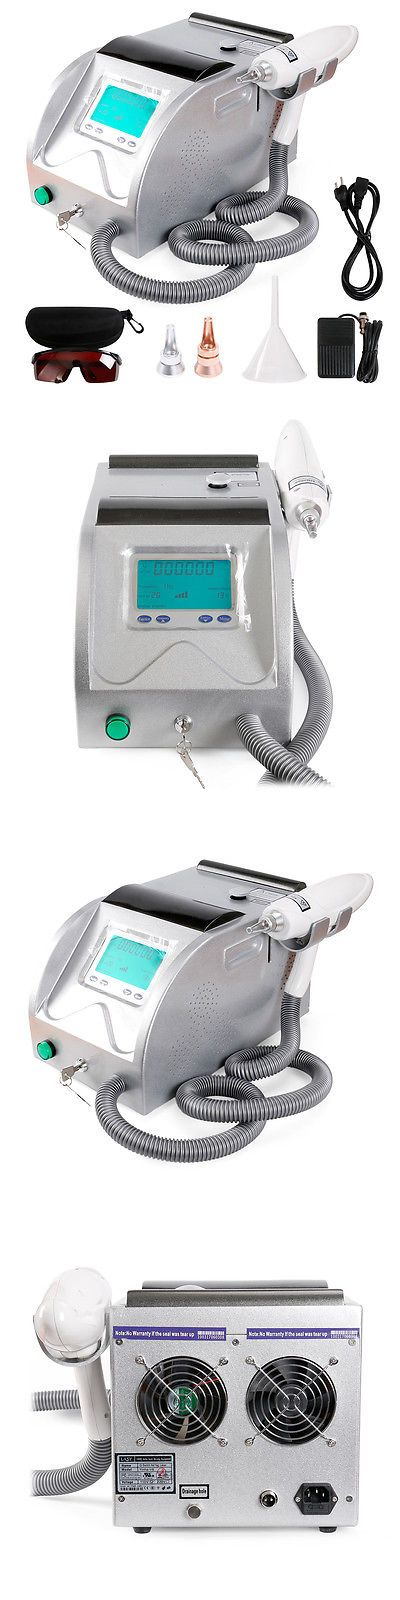 Tattoo Removal Machines: Nd Yag Q-Switch Laser Tattoo Removal Machine 1064Nm And 532Nm Beauty Device Lr201 -> BUY IT NOW ONLY: $1395.0 on eBay!